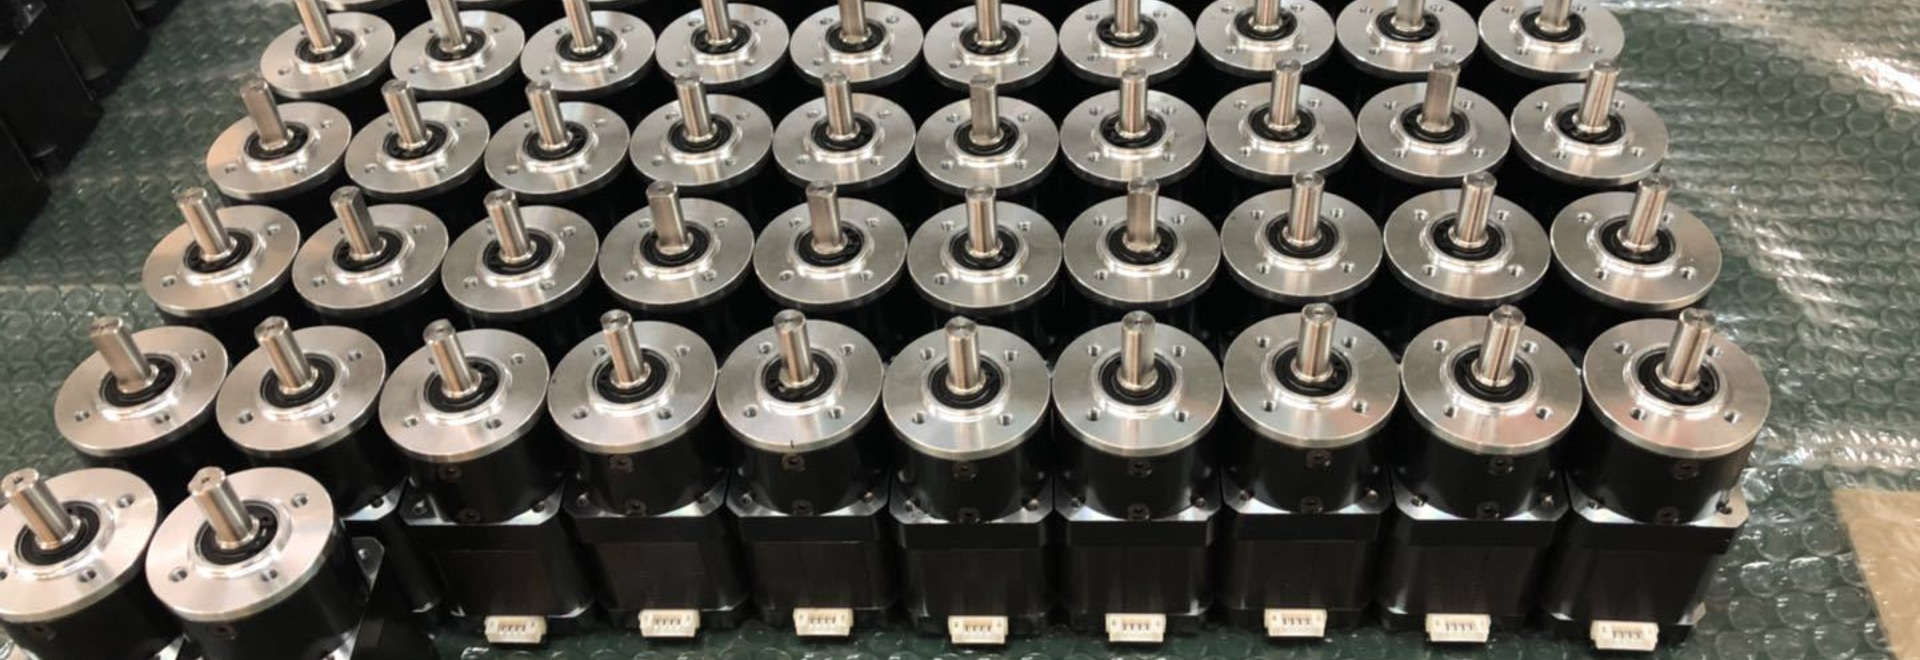 Three different gearbox materials for 42mm Planetary geared motor